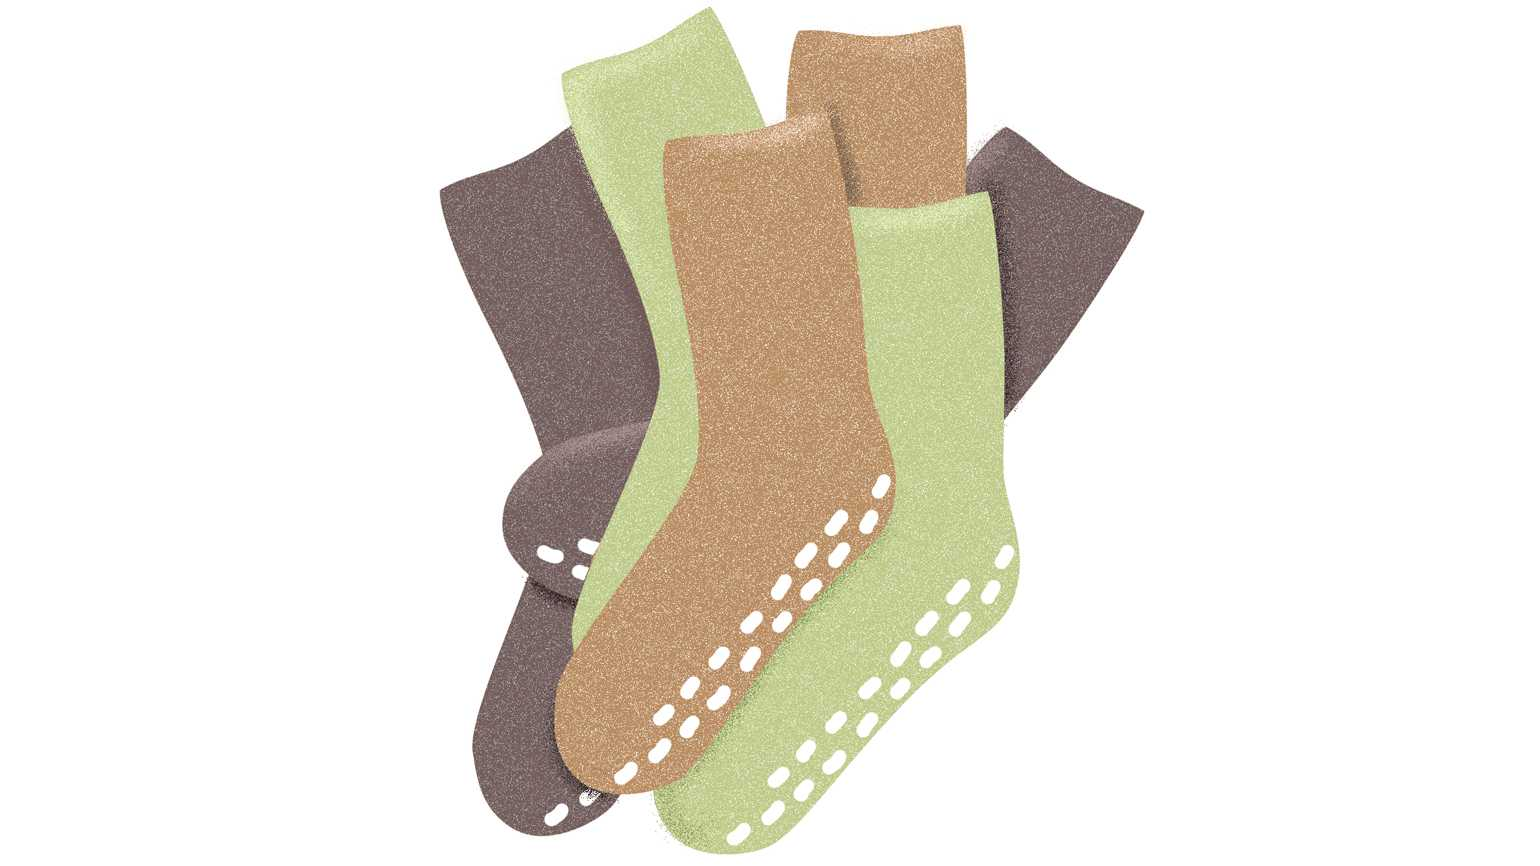 An artist's rendering of three pairs of colorful socks.